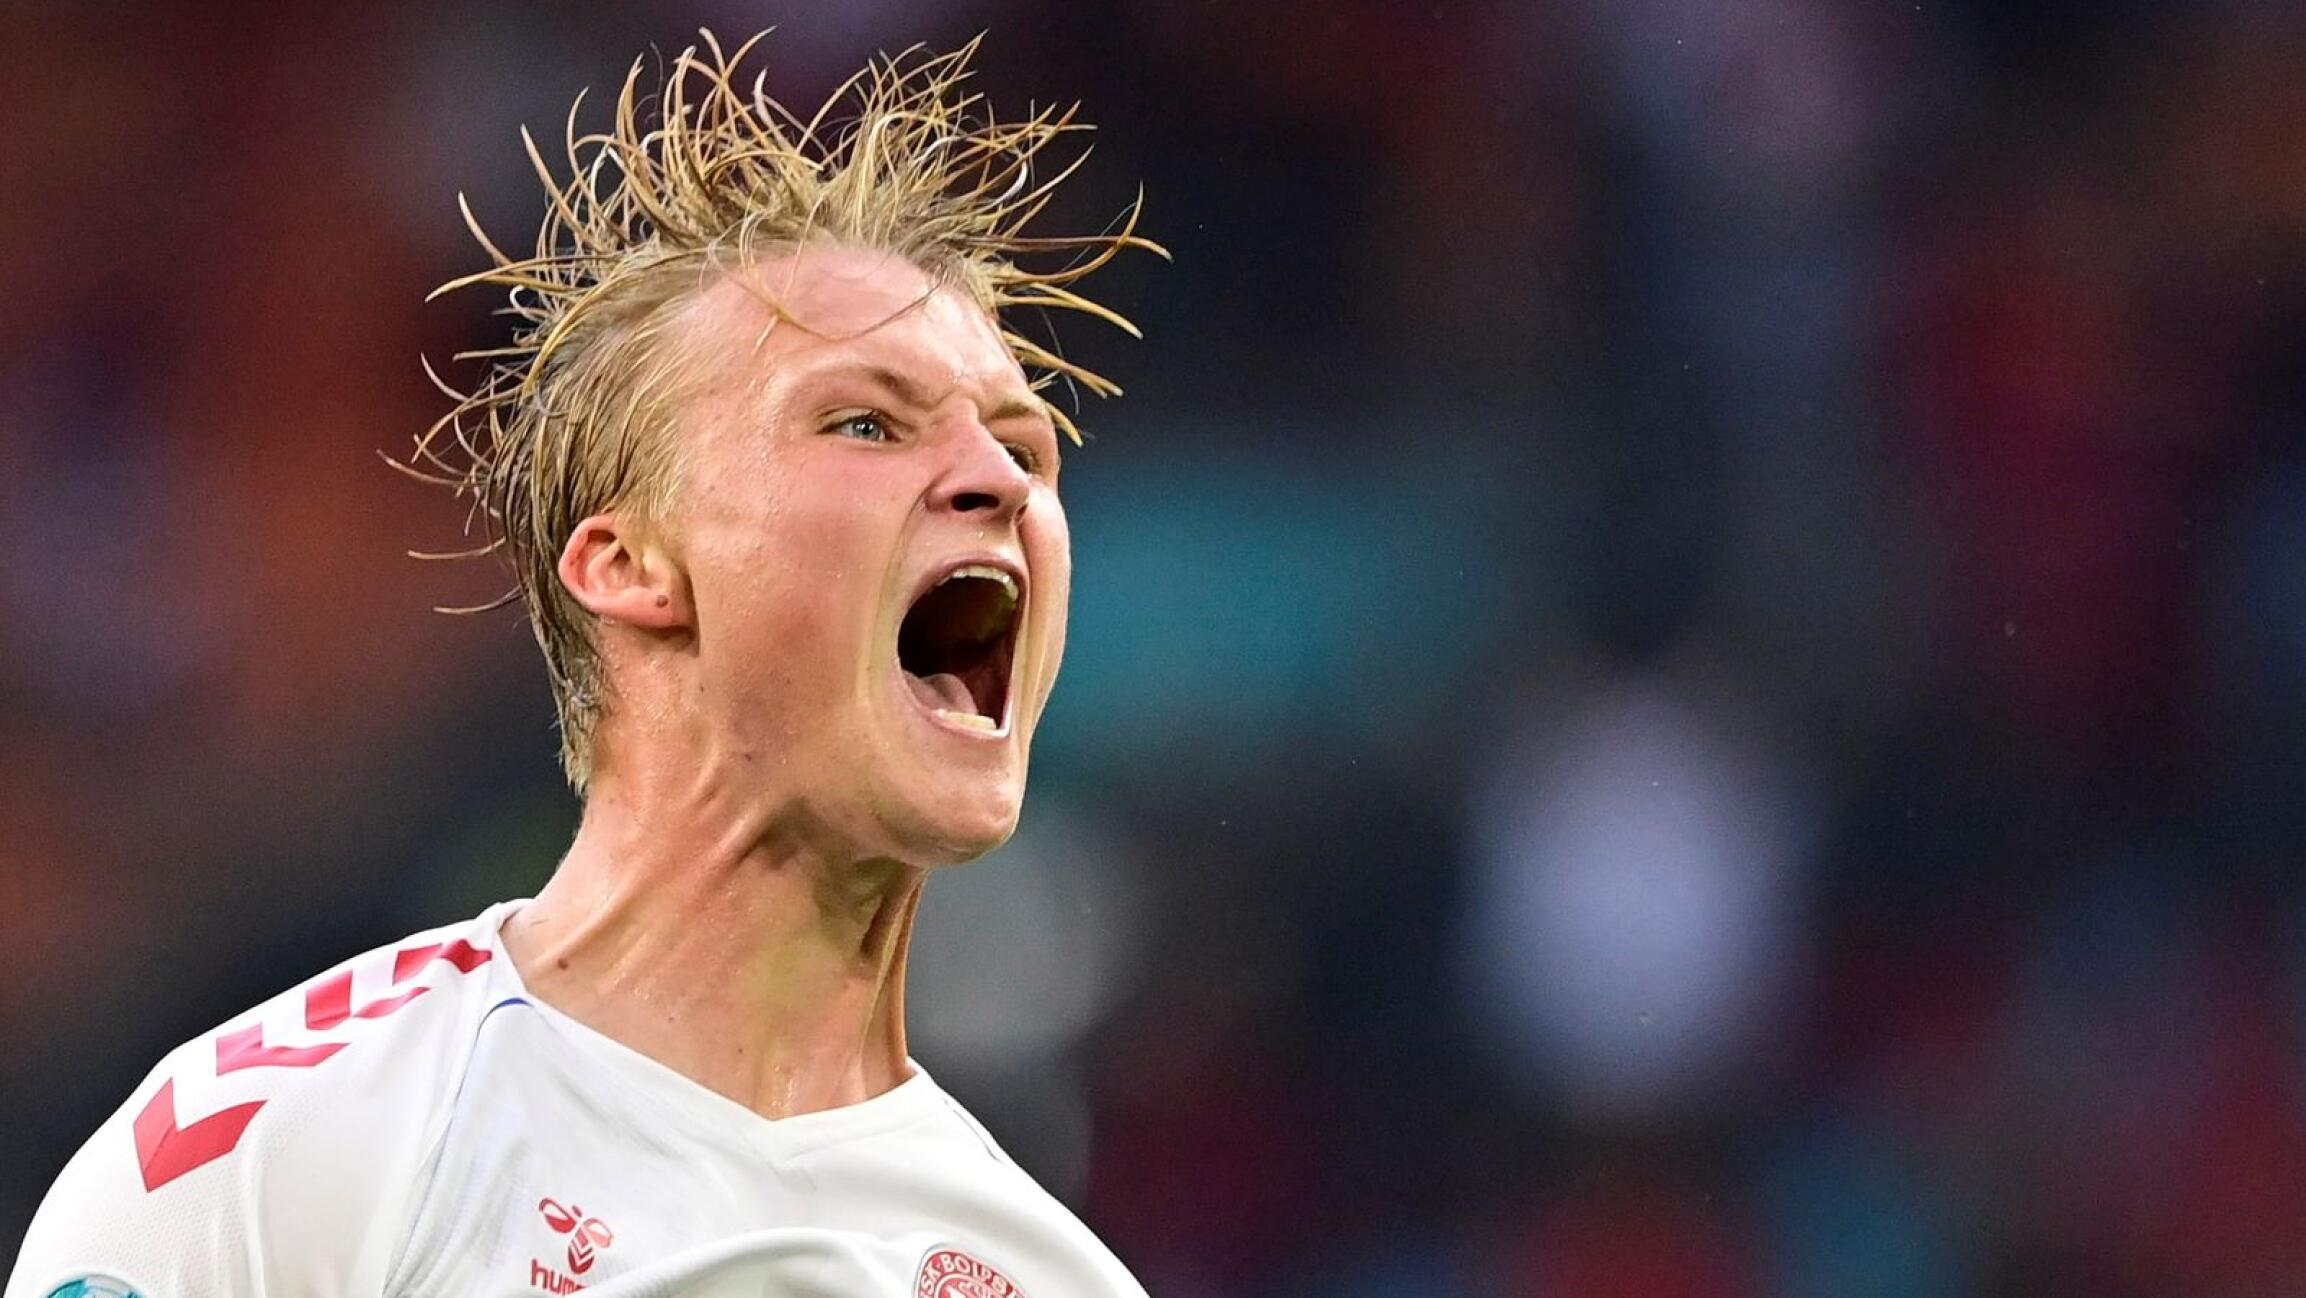 Denmark's Kasper Dolberg celebrates after scoring their second goal during their Euro 2020 game against Wales on Saturday